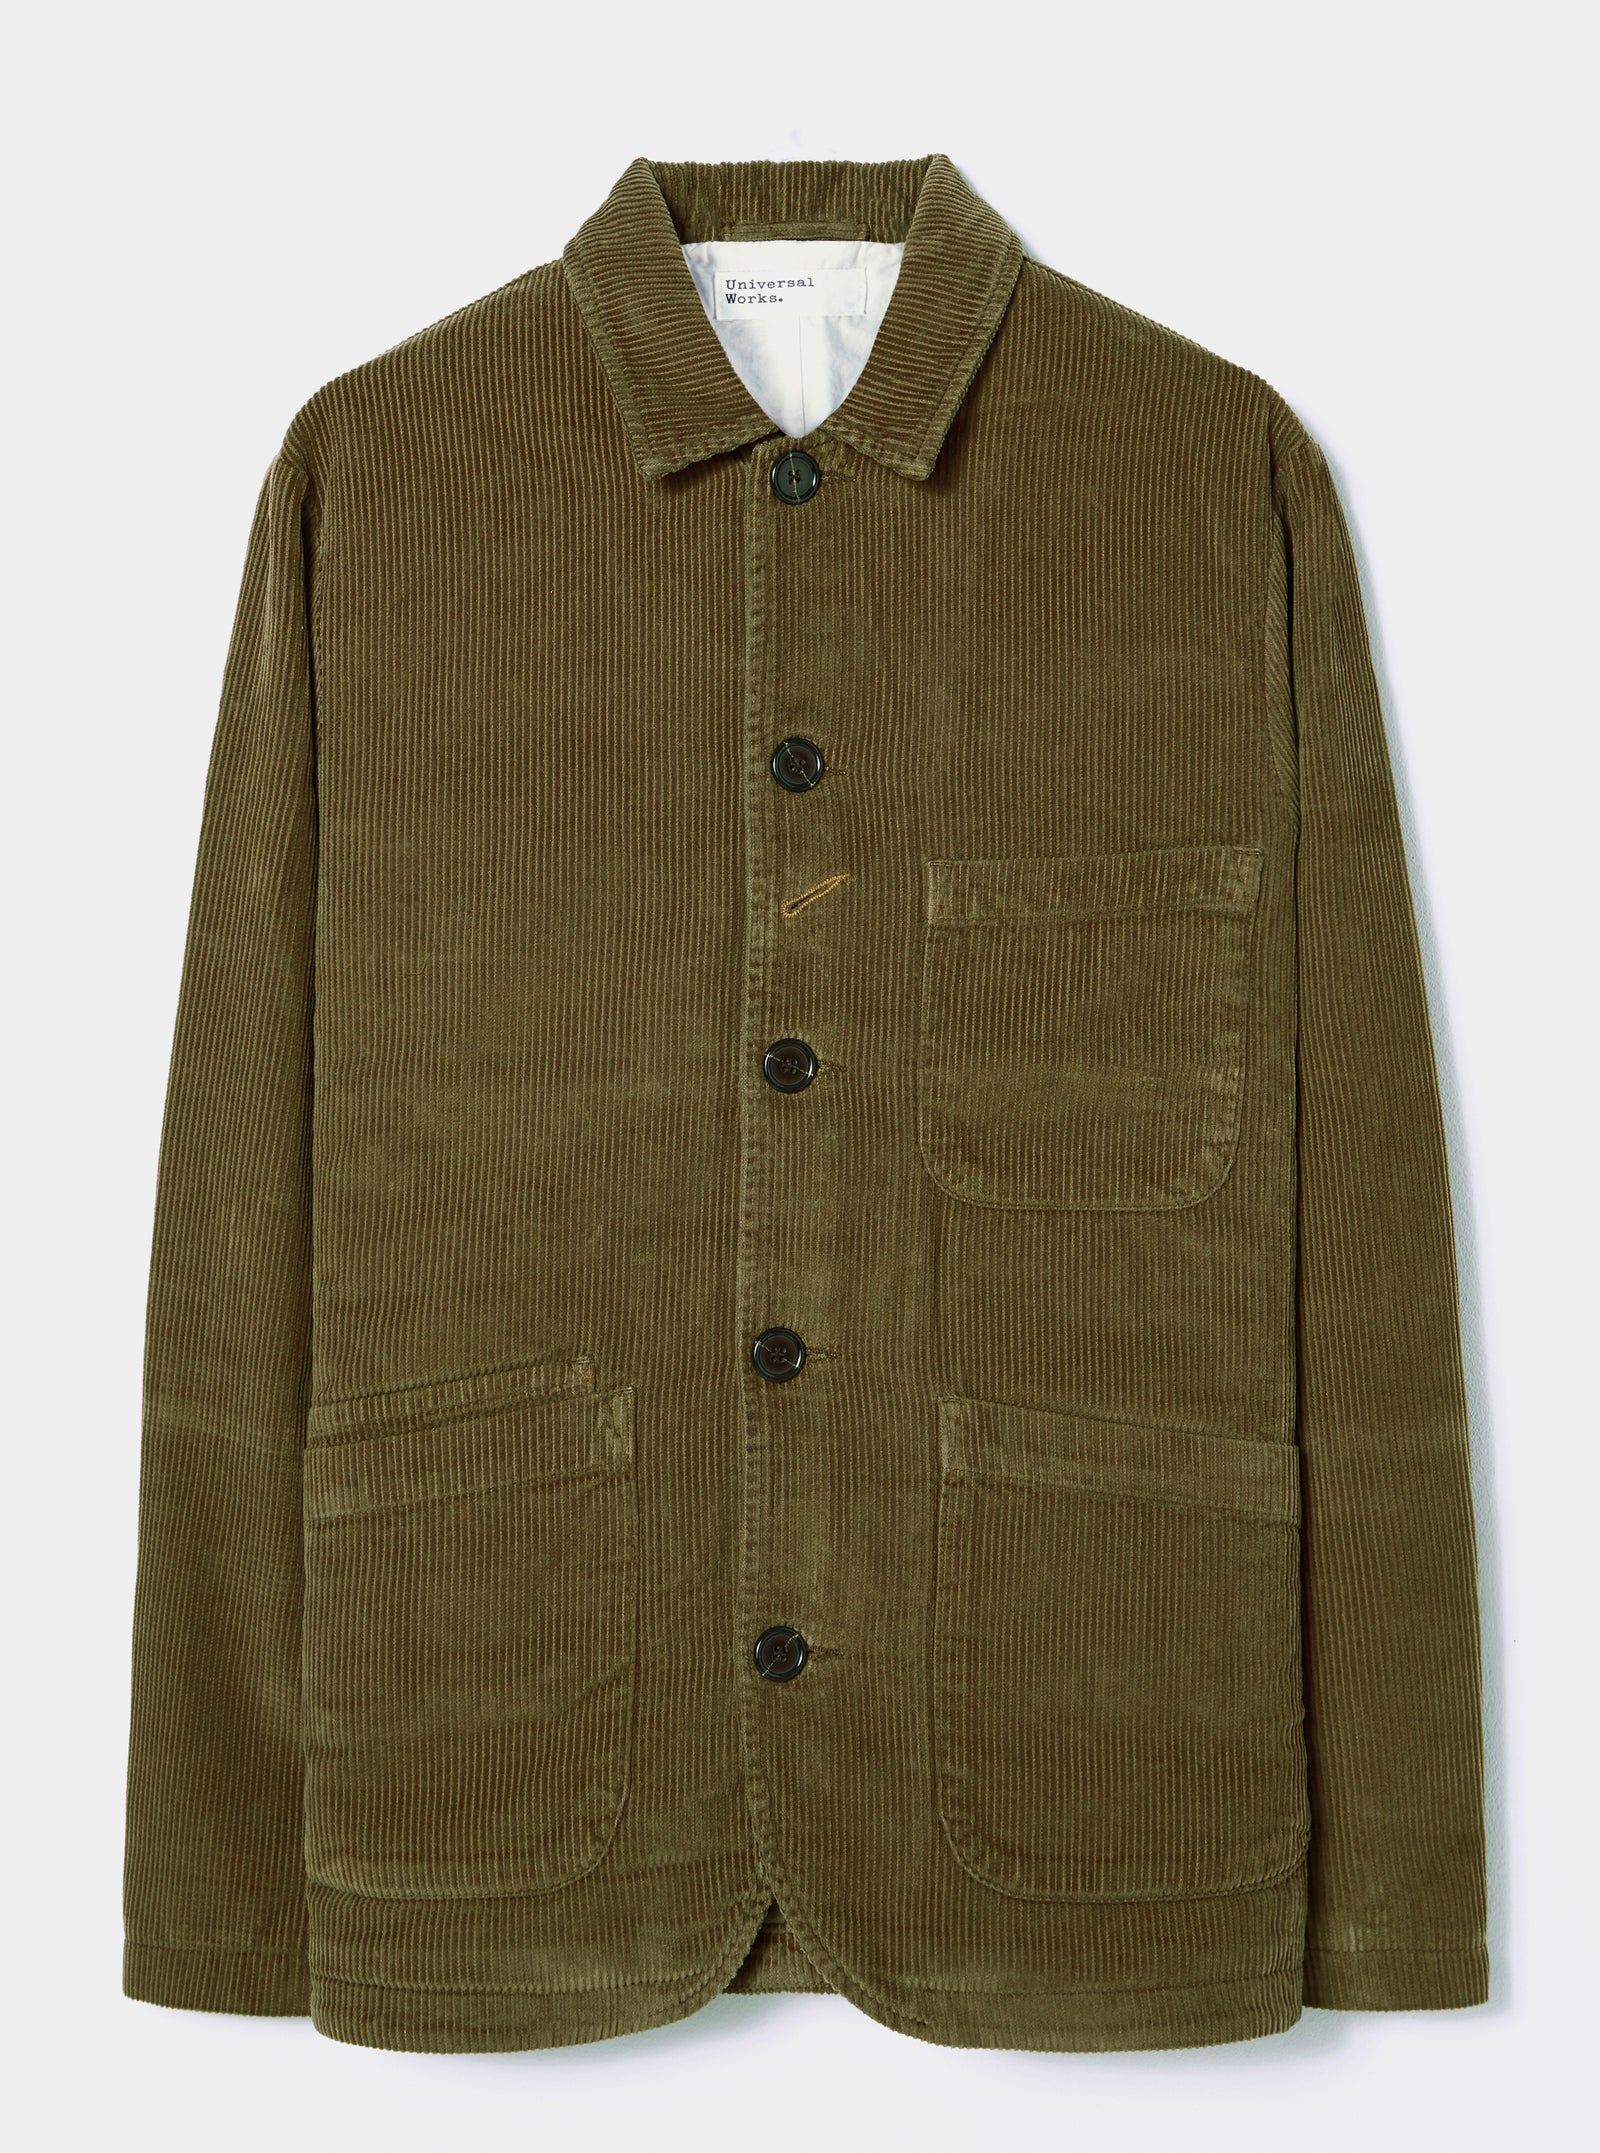 Universal Works Bakers Jacket in Olive Cord